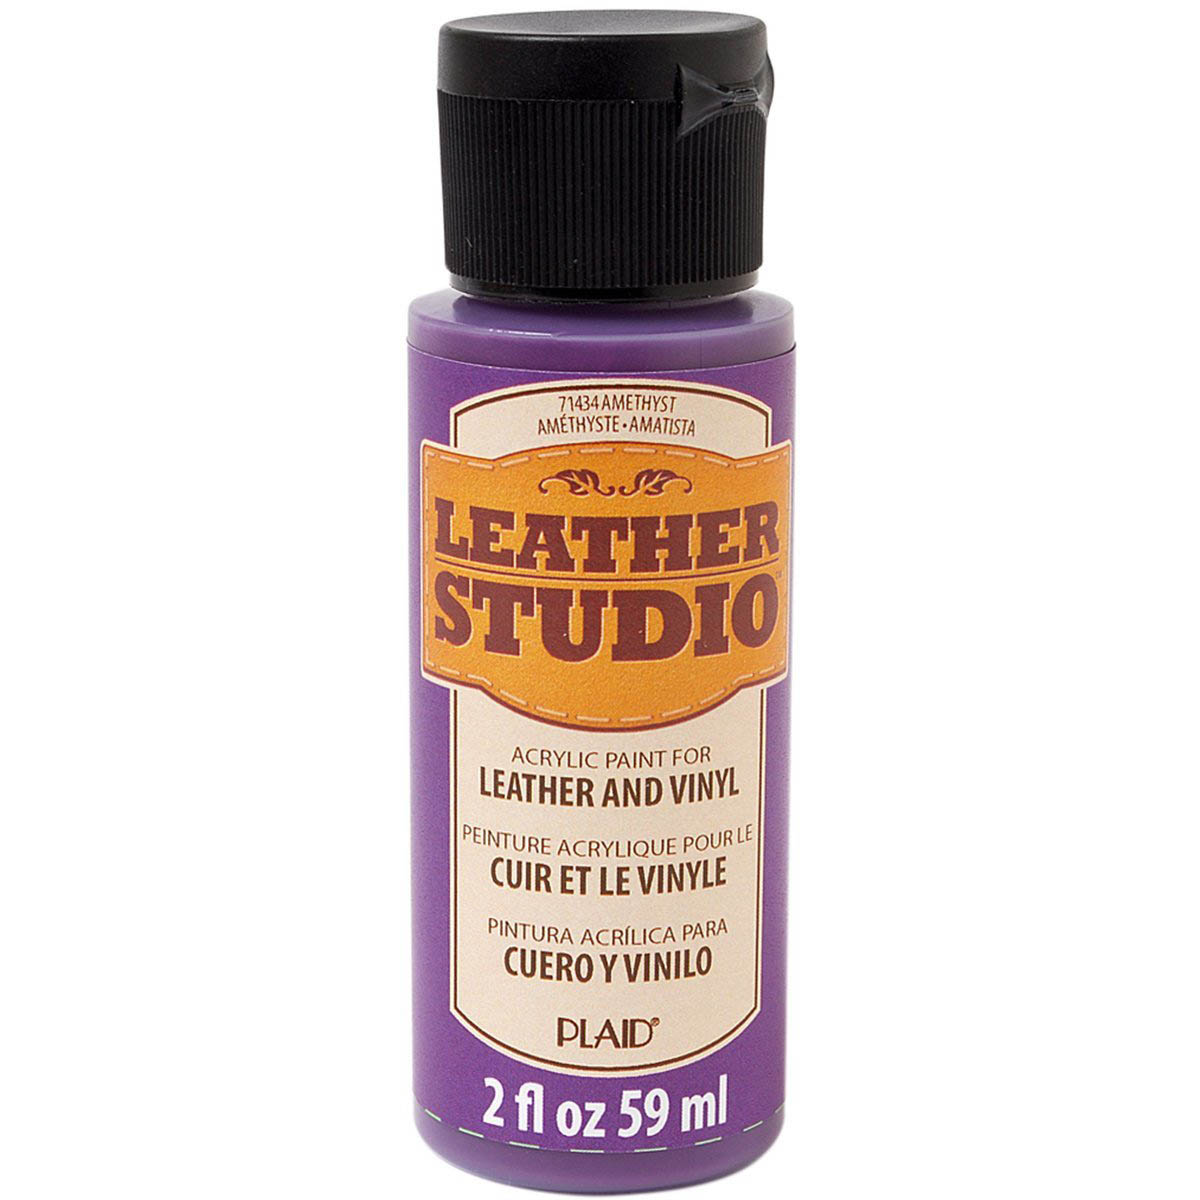 Leather Studio™ Leather & Vinyl Paint Colors - Amethyst, 2 oz. - 71434